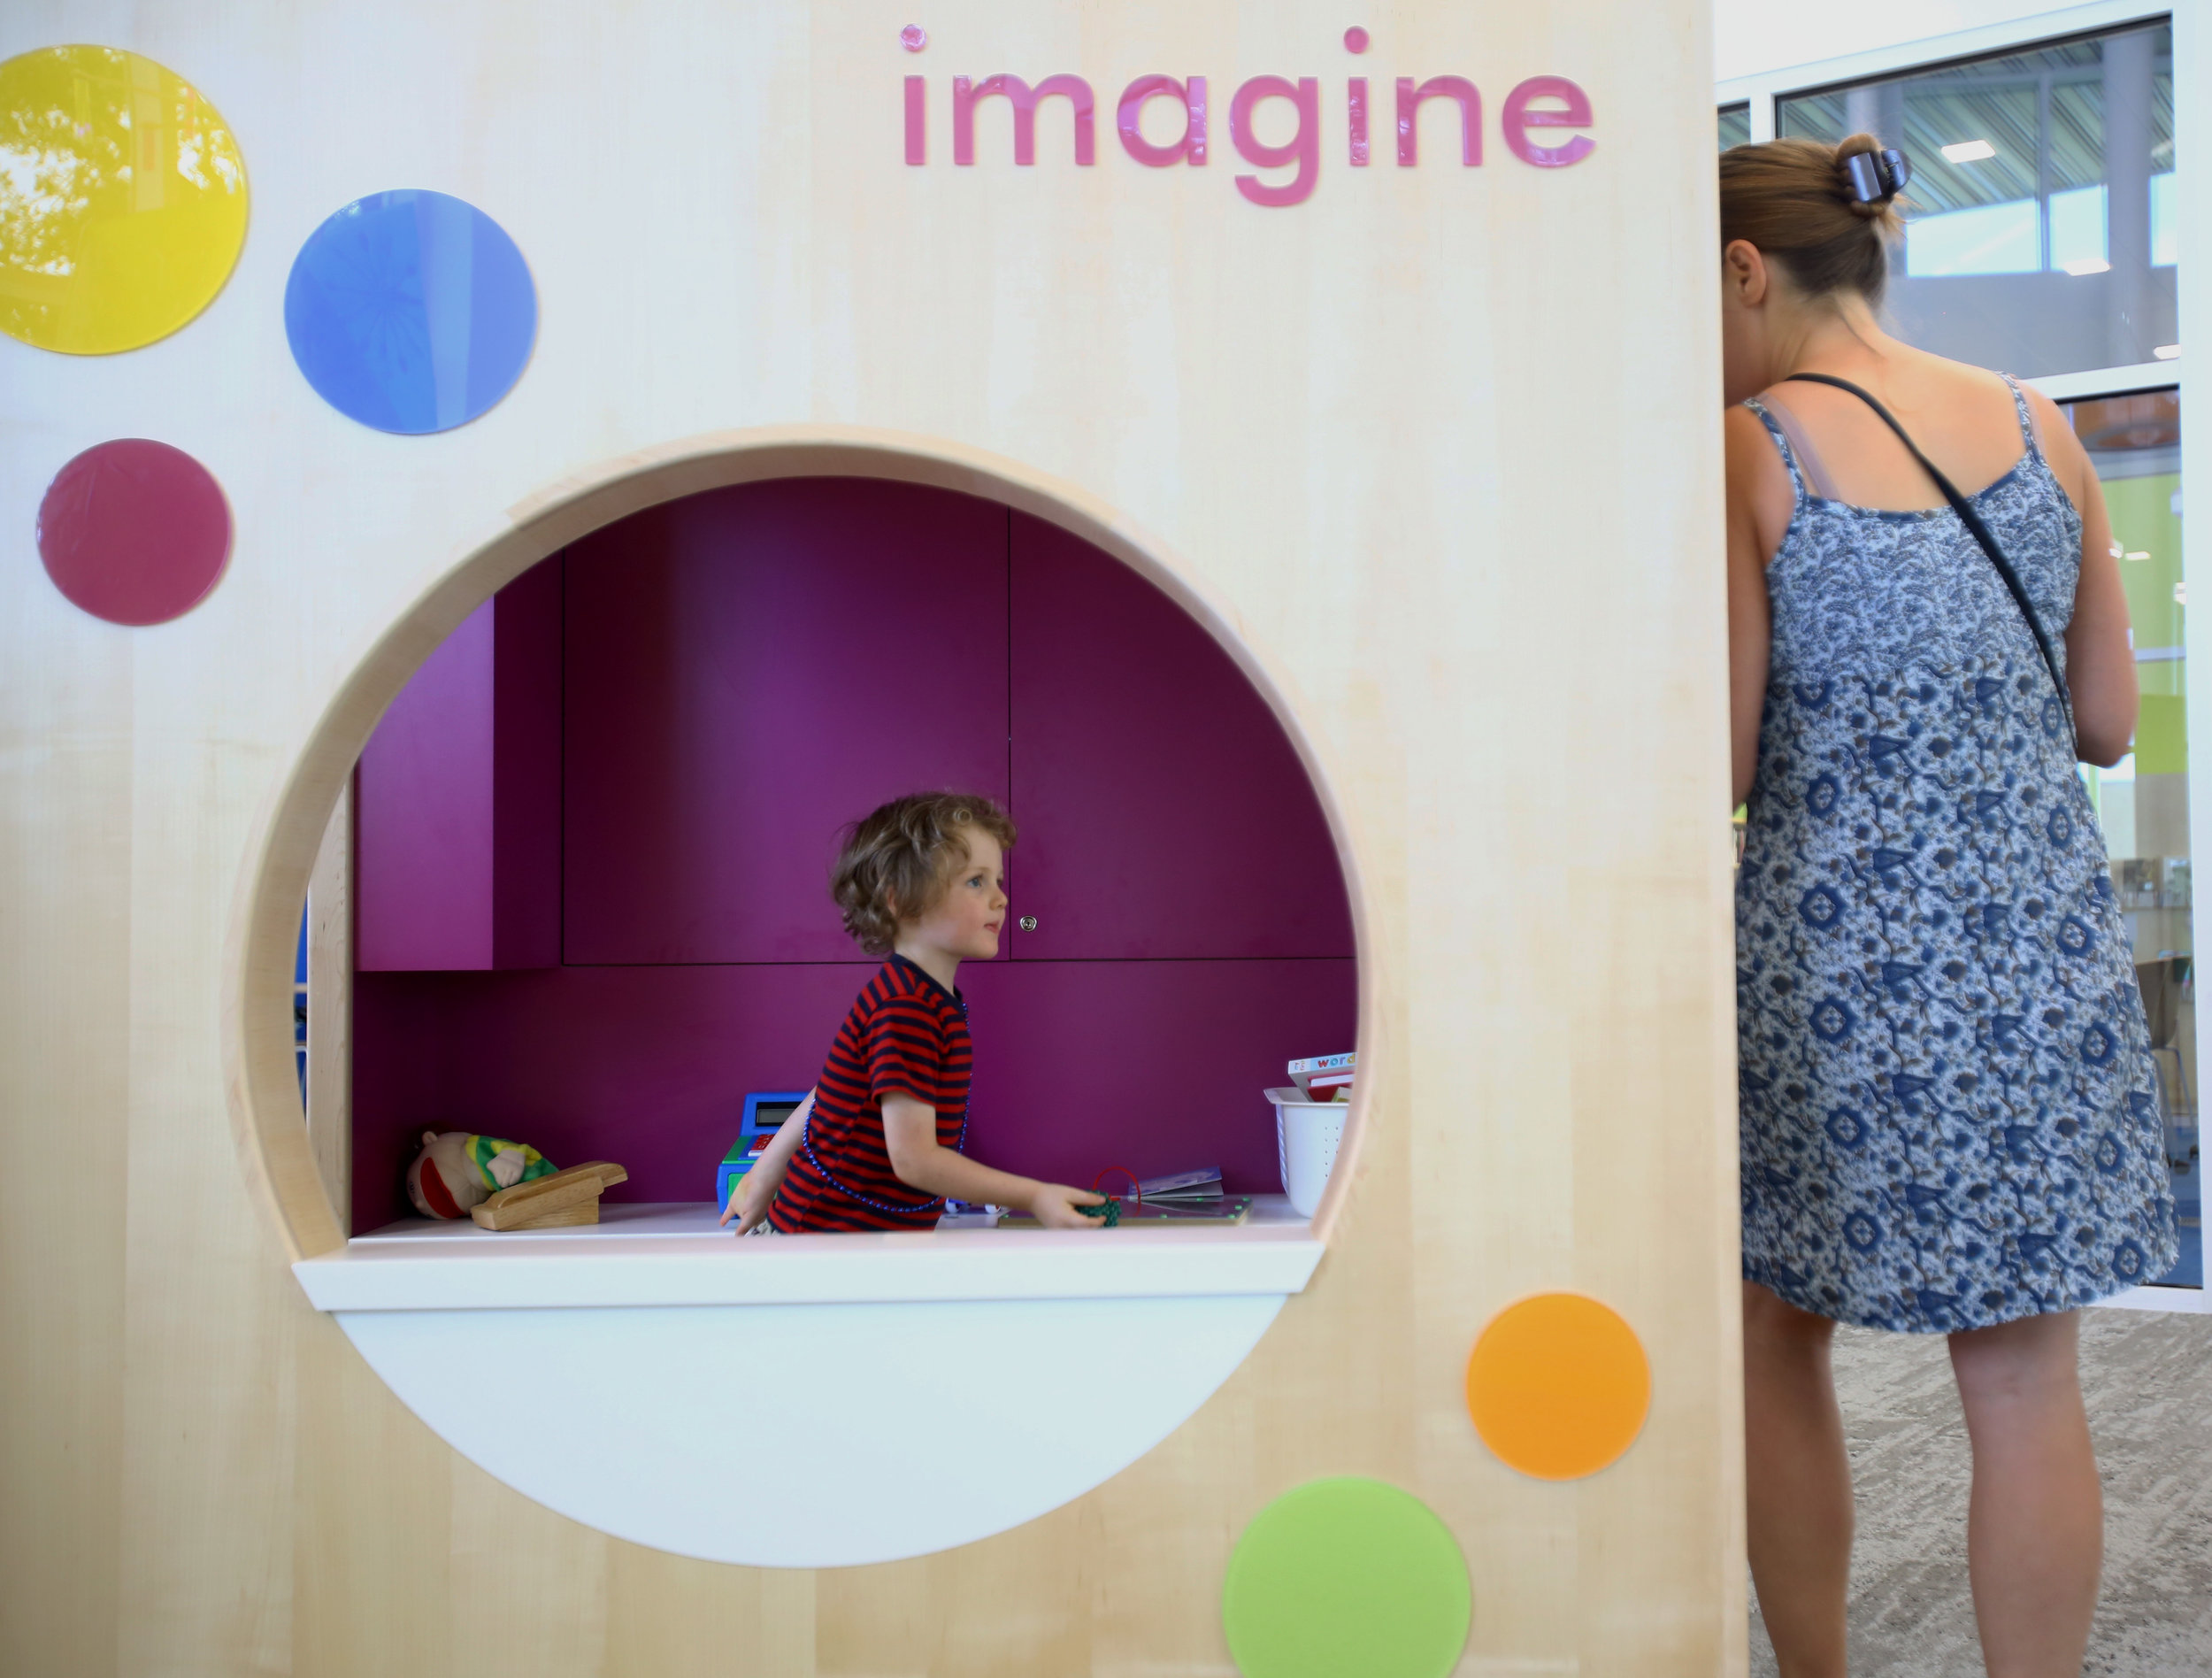 Amos Woods, 4, of Sylvania plays in the children's section of the newly opened King Road branch of the Toledo Lucas County Public Library in Sylvania with his mother Brenda Woods on Monday, Sept. 26, 2016. Brenda Woods saw on Facebook that the library had opened and said that the new branch would be their regular library after always having to go to the Holland branch.